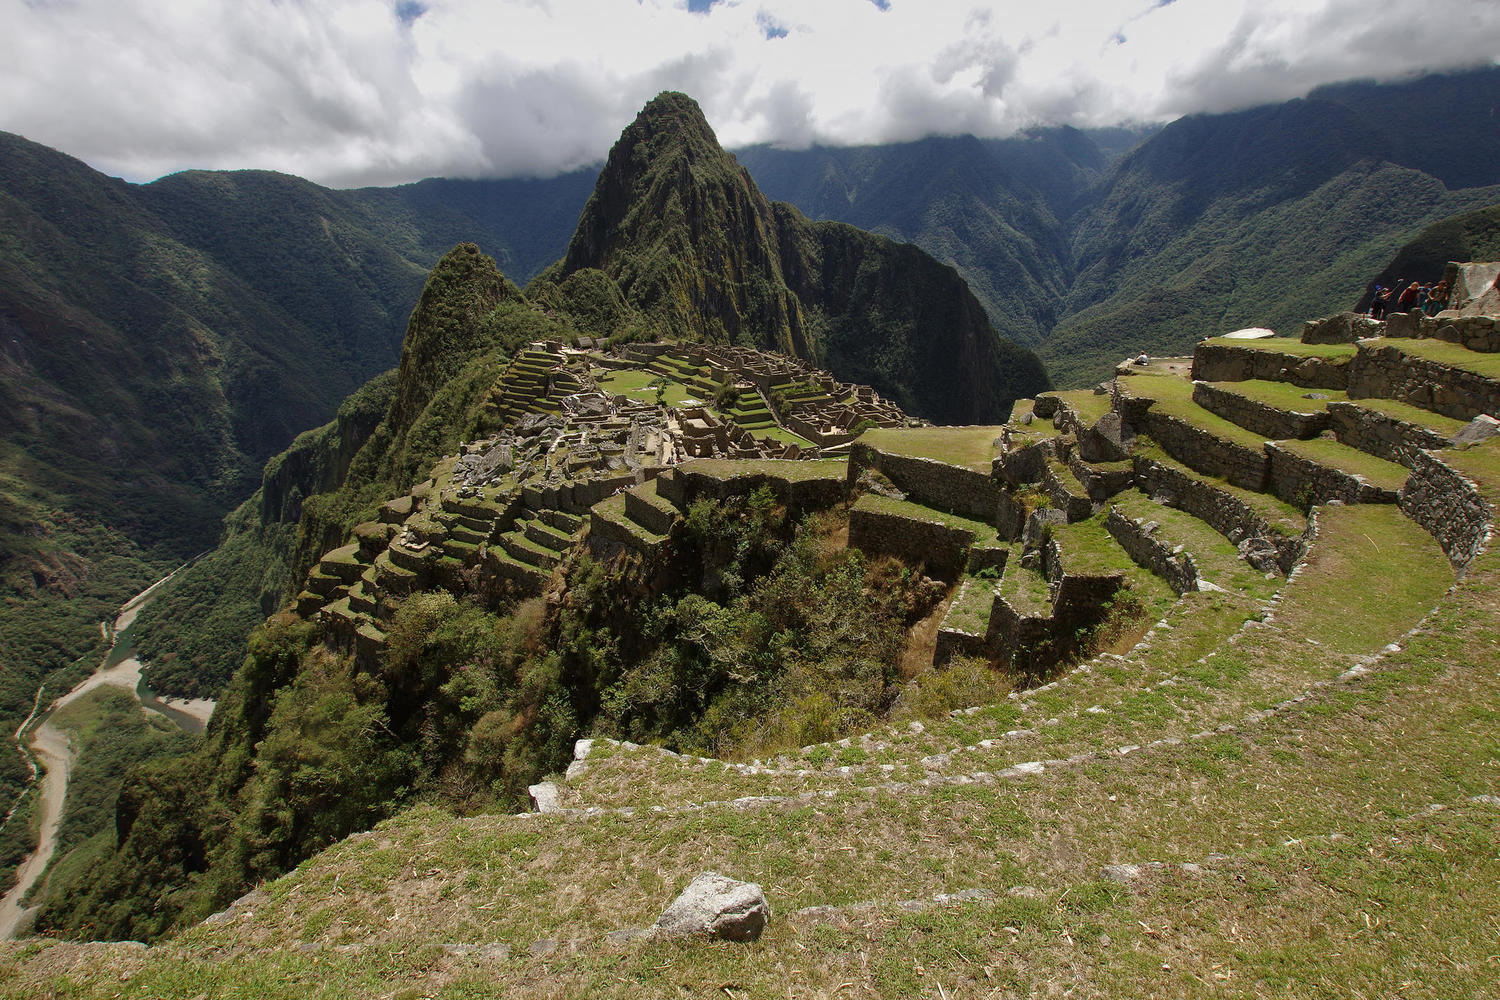 Machu Picchu is a special place indeed, worthy of thoughtful consideration